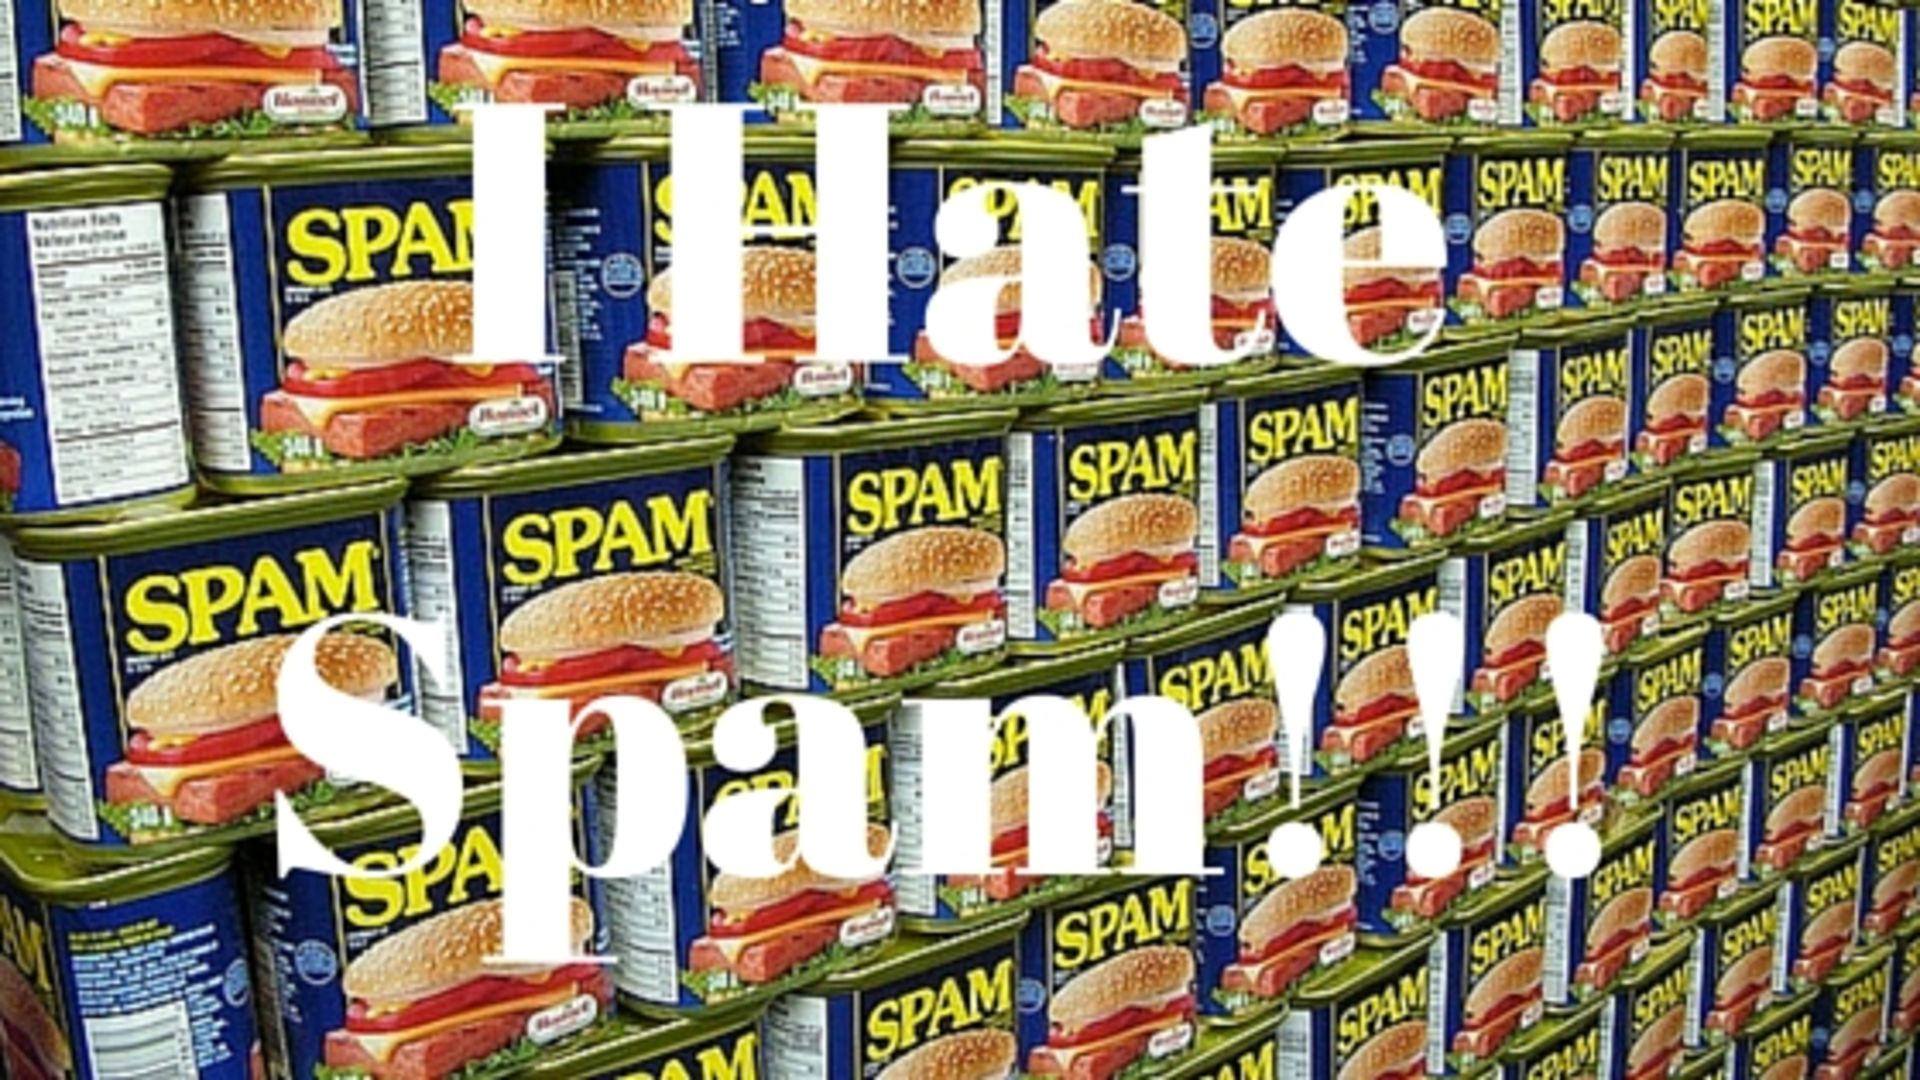 I Hate Spam! I Know You Hate Spam Too …